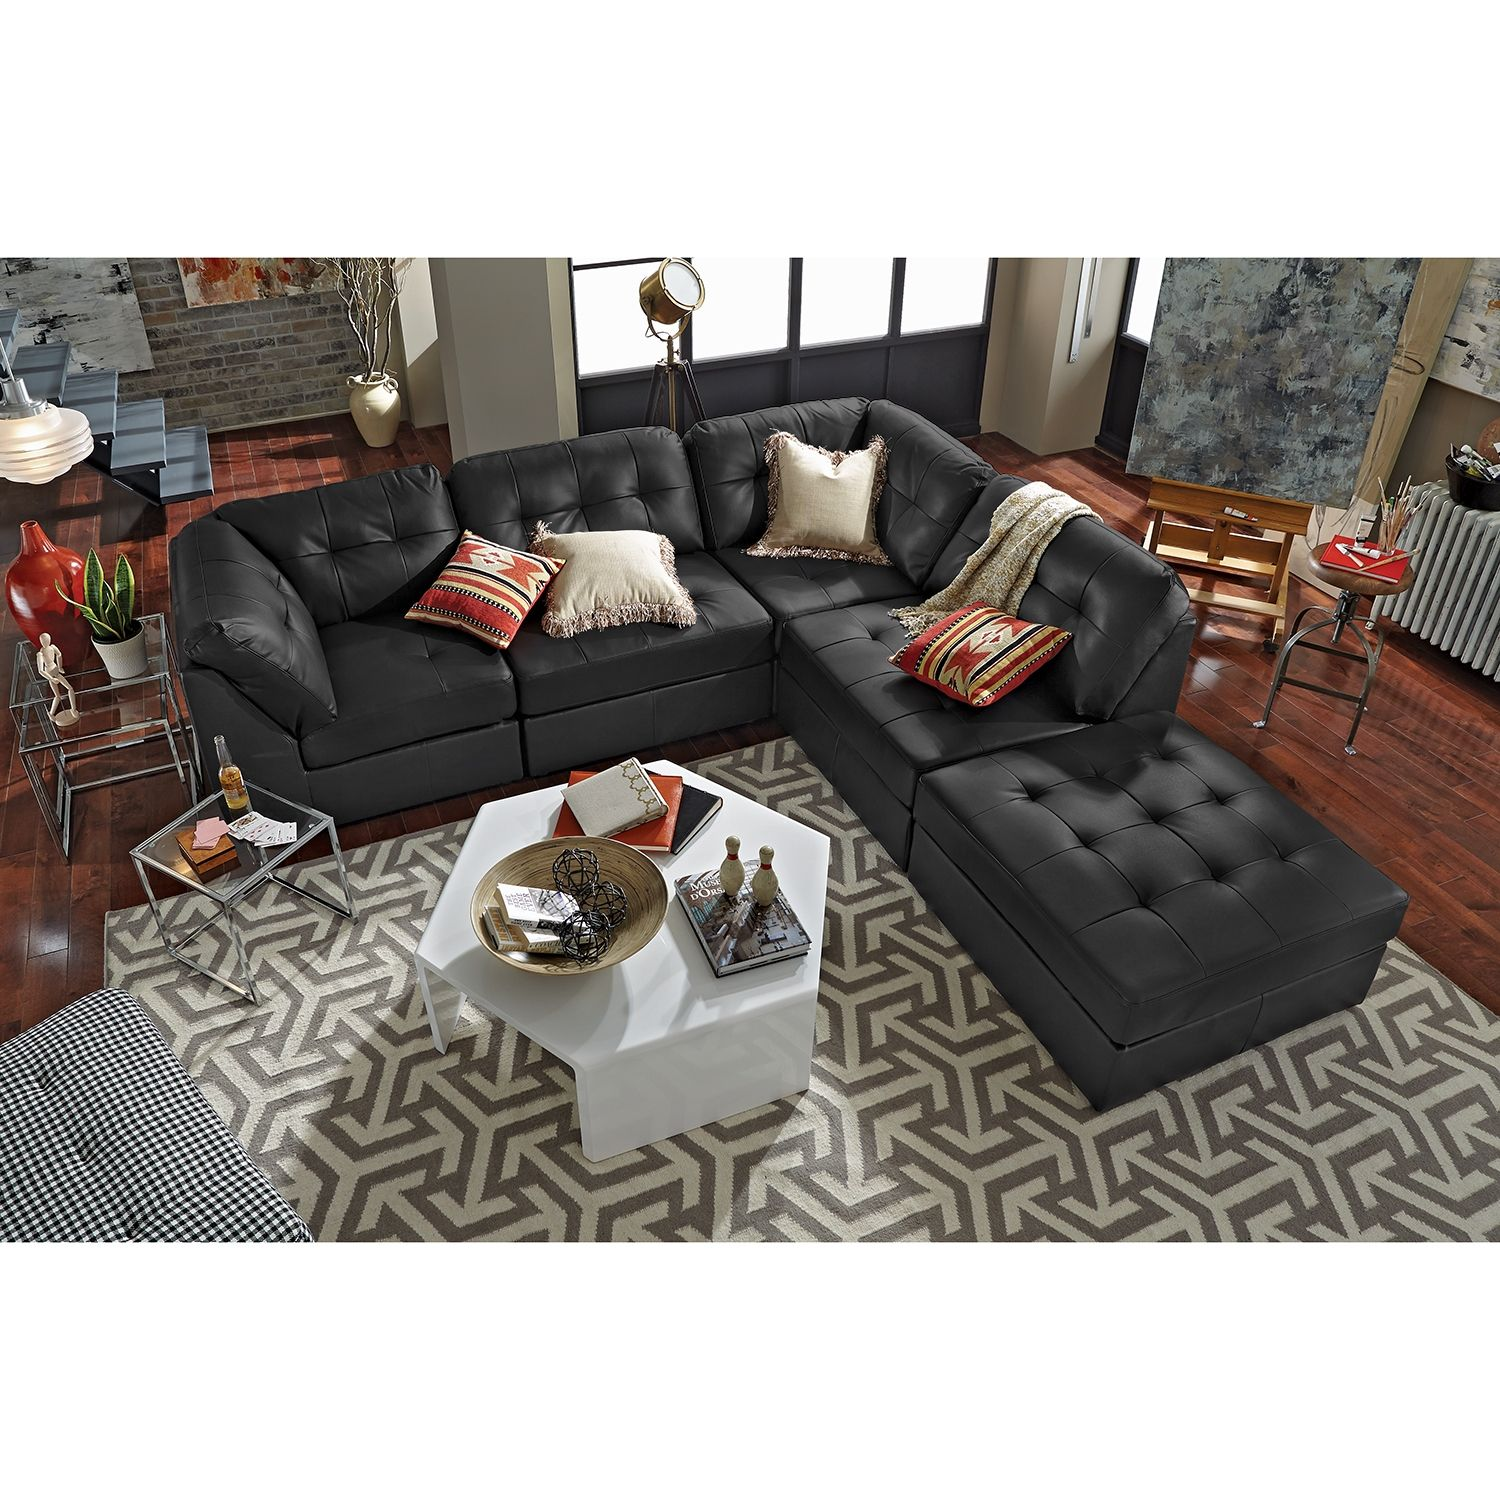 Value City Living Room Sets American Signature Furniture Aventura Leather 5 Pc Sectional